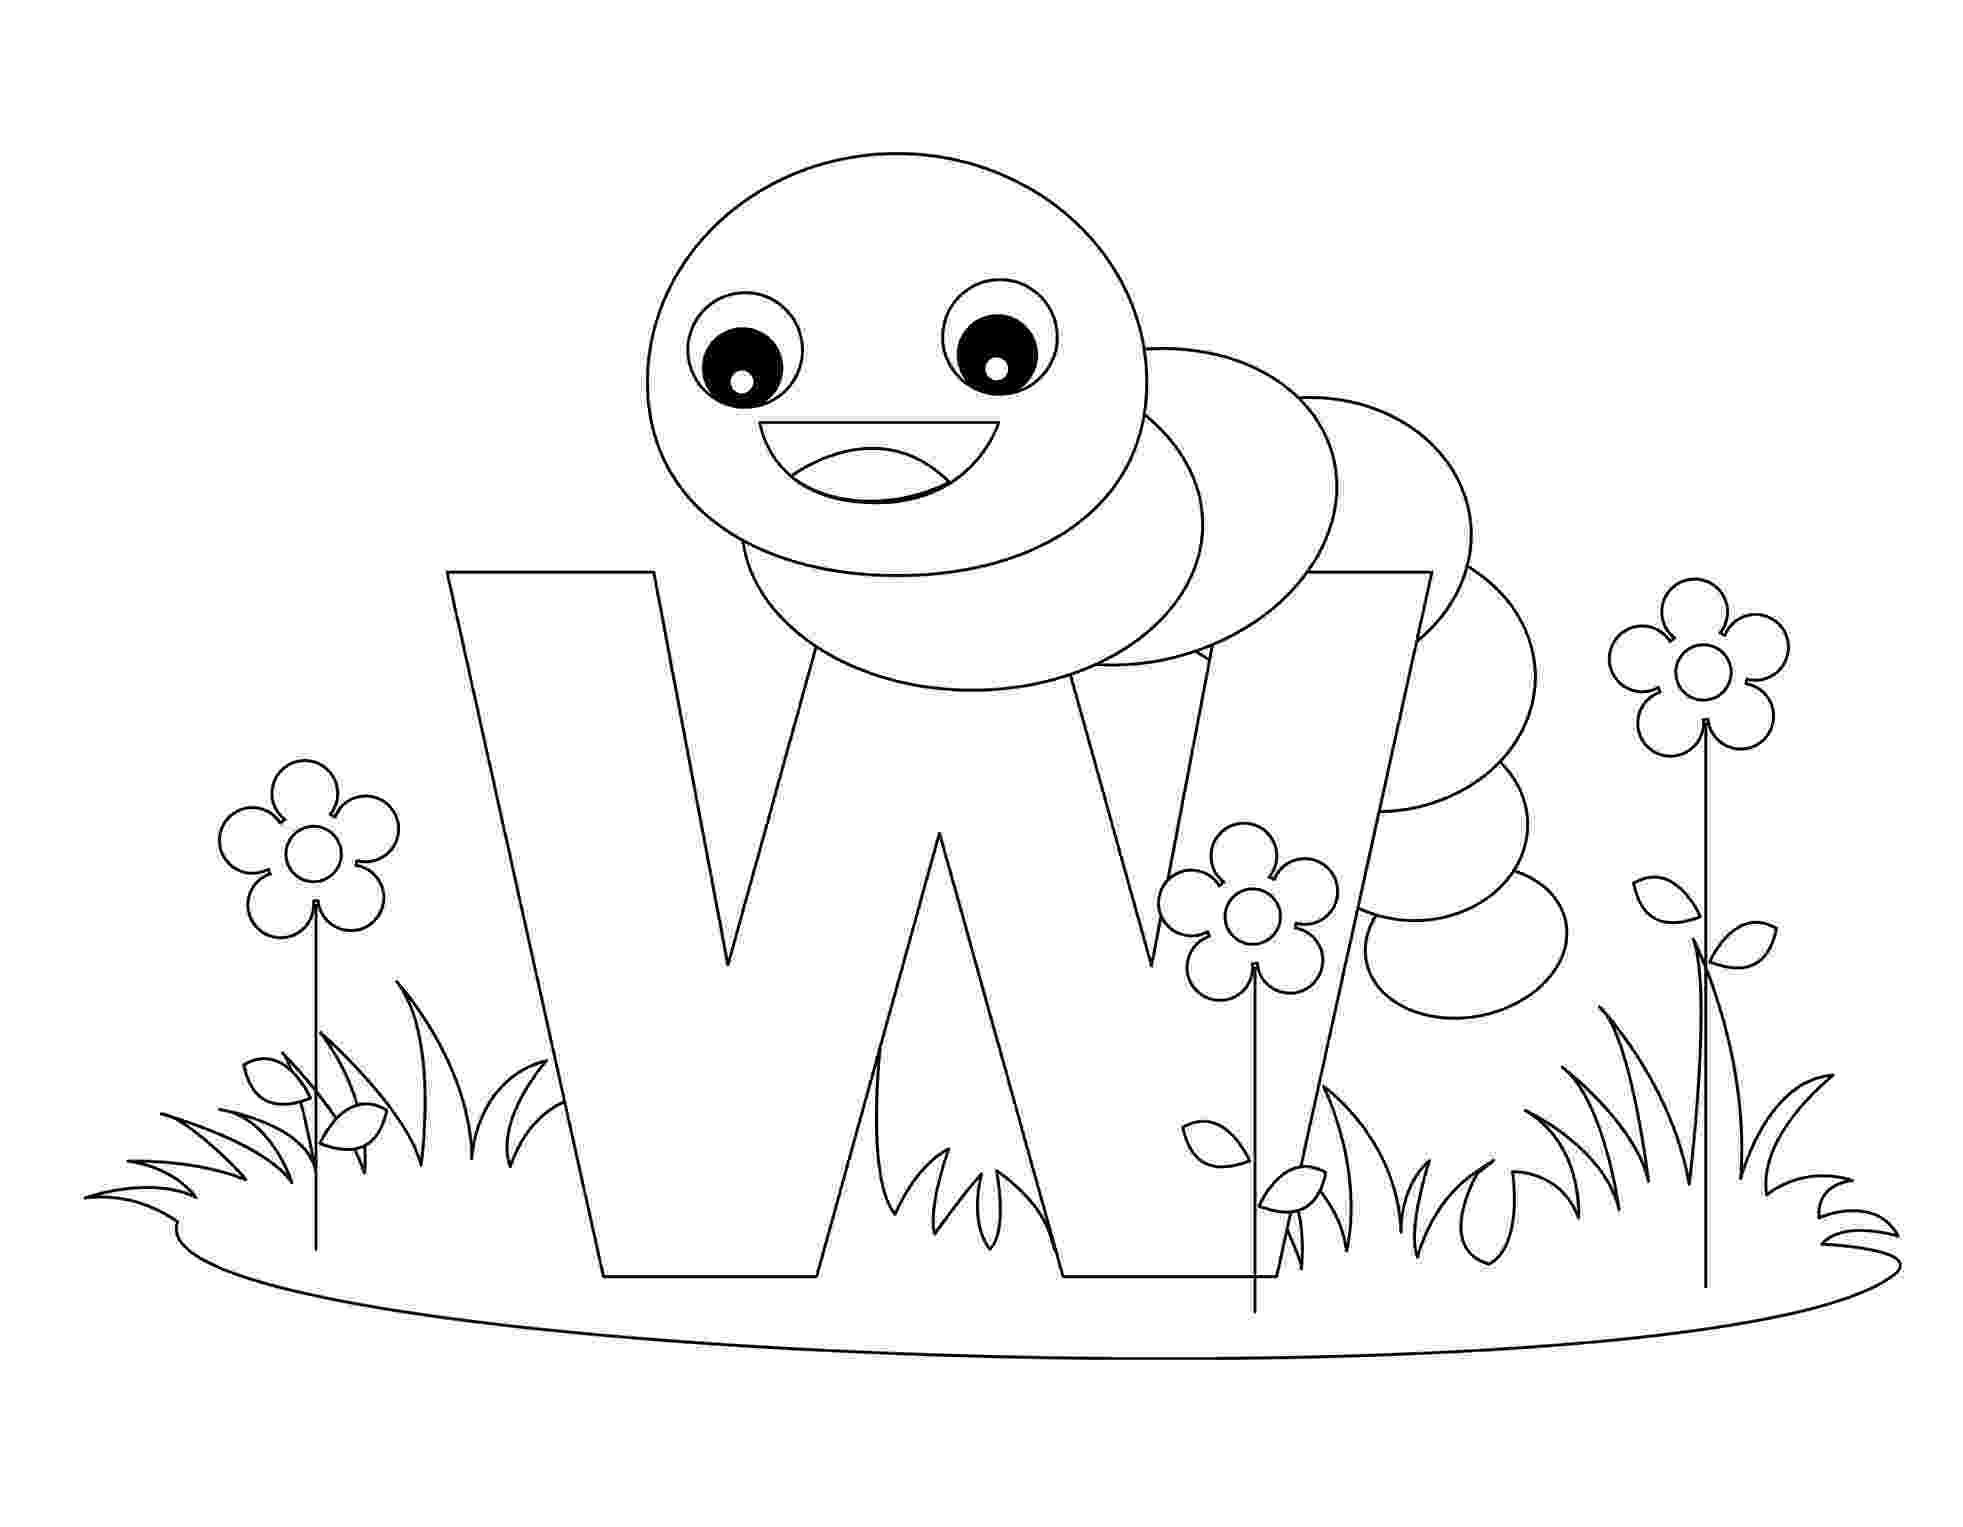 printable coloring book letters letter s coloring pages to download and print for free letters book printable coloring